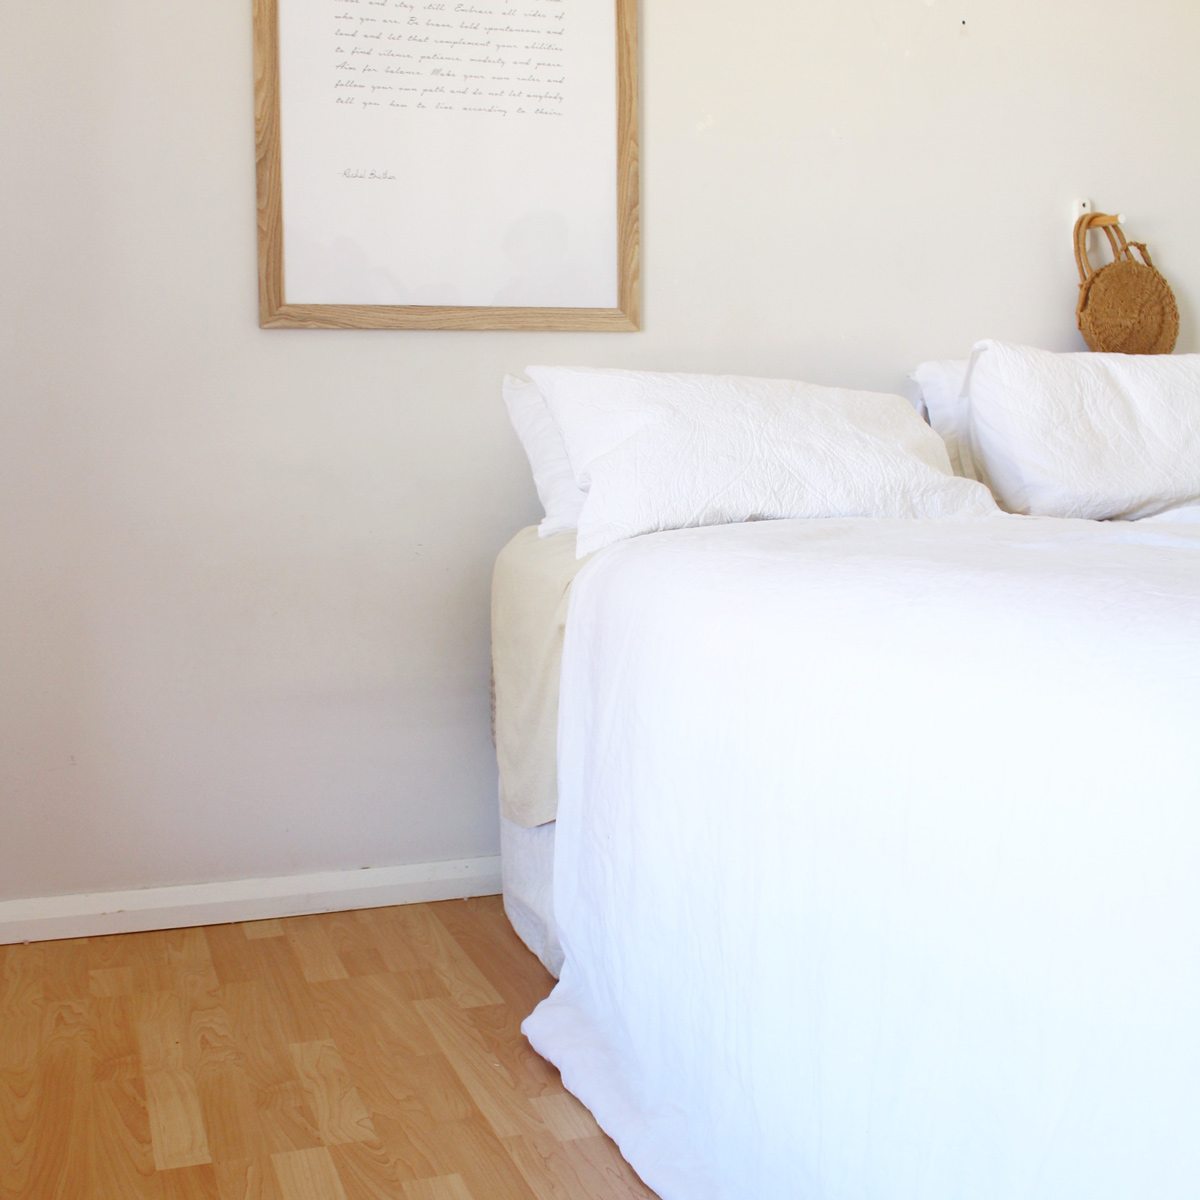 Plain-bedroom-white-sheets